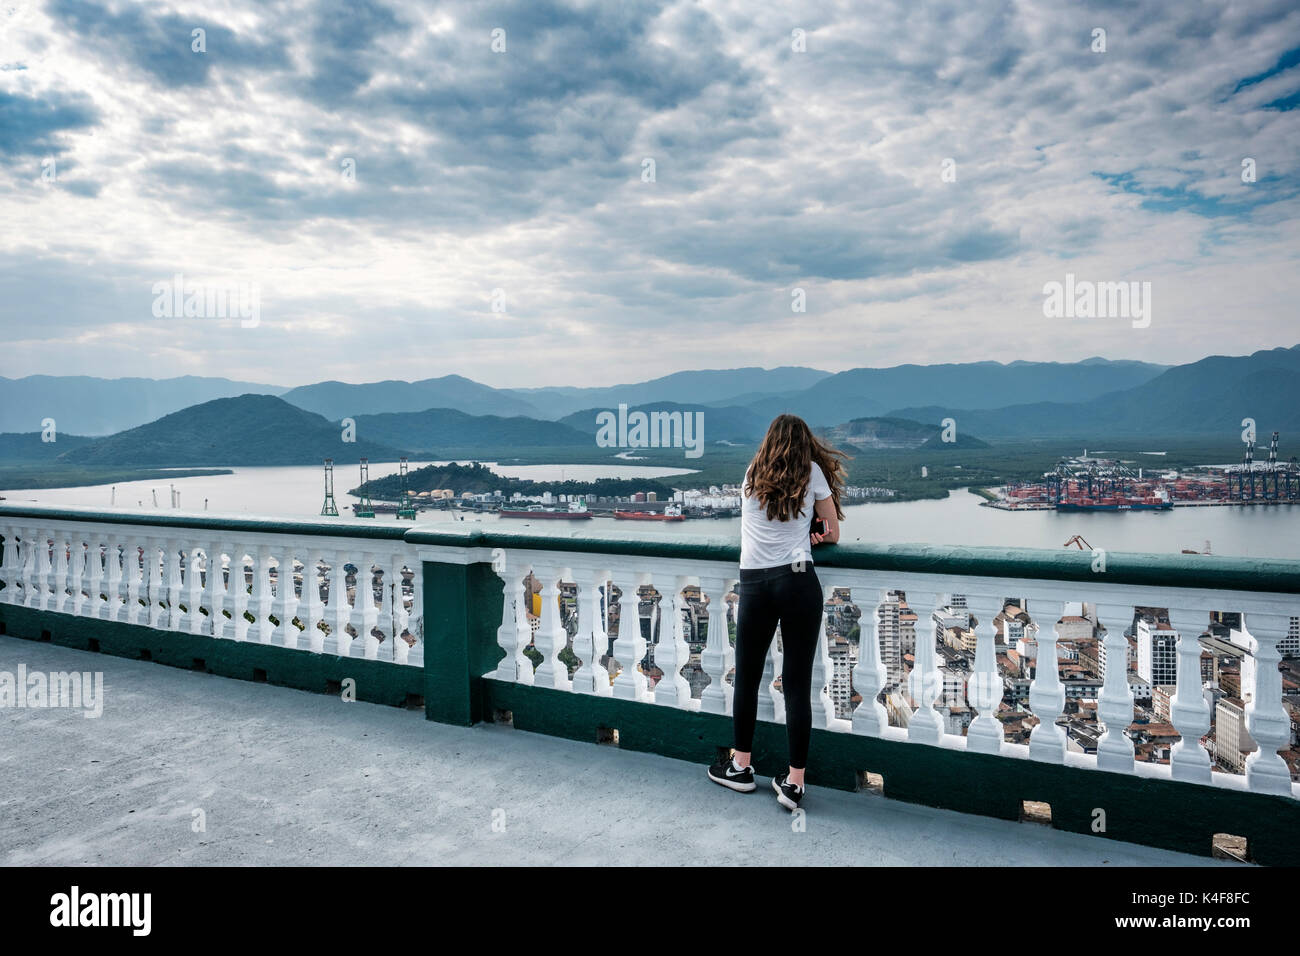 teenager-girl-appreciating-the-view-from-the-top-of-monte-serrat-overlooking-K4F8FC.jpg